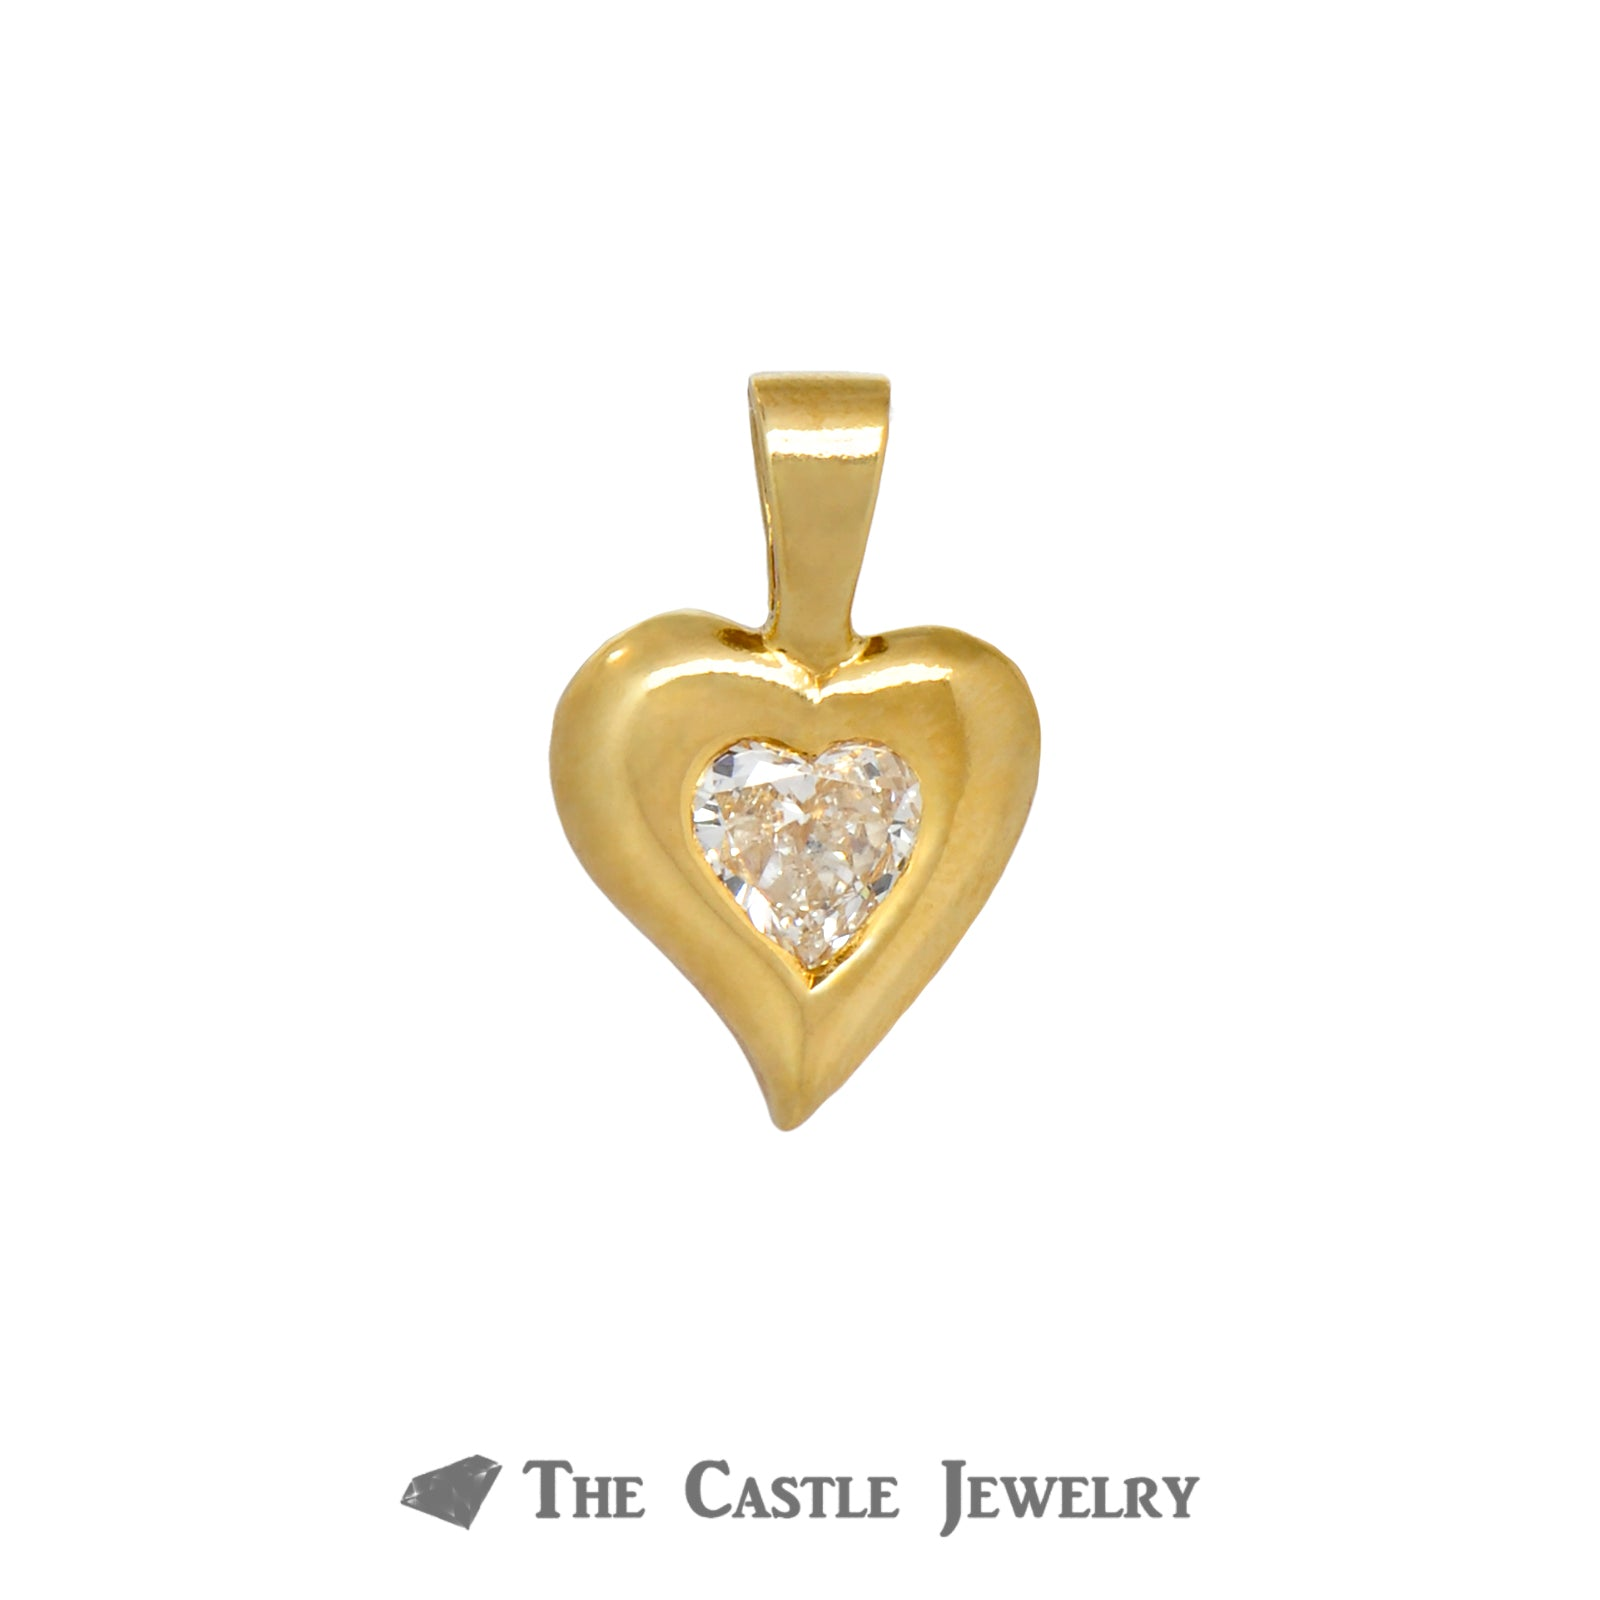 Gorgeous 14k Yellow Gold Heart Shaped Pendant with Bezel Set Heart Cut Diamond